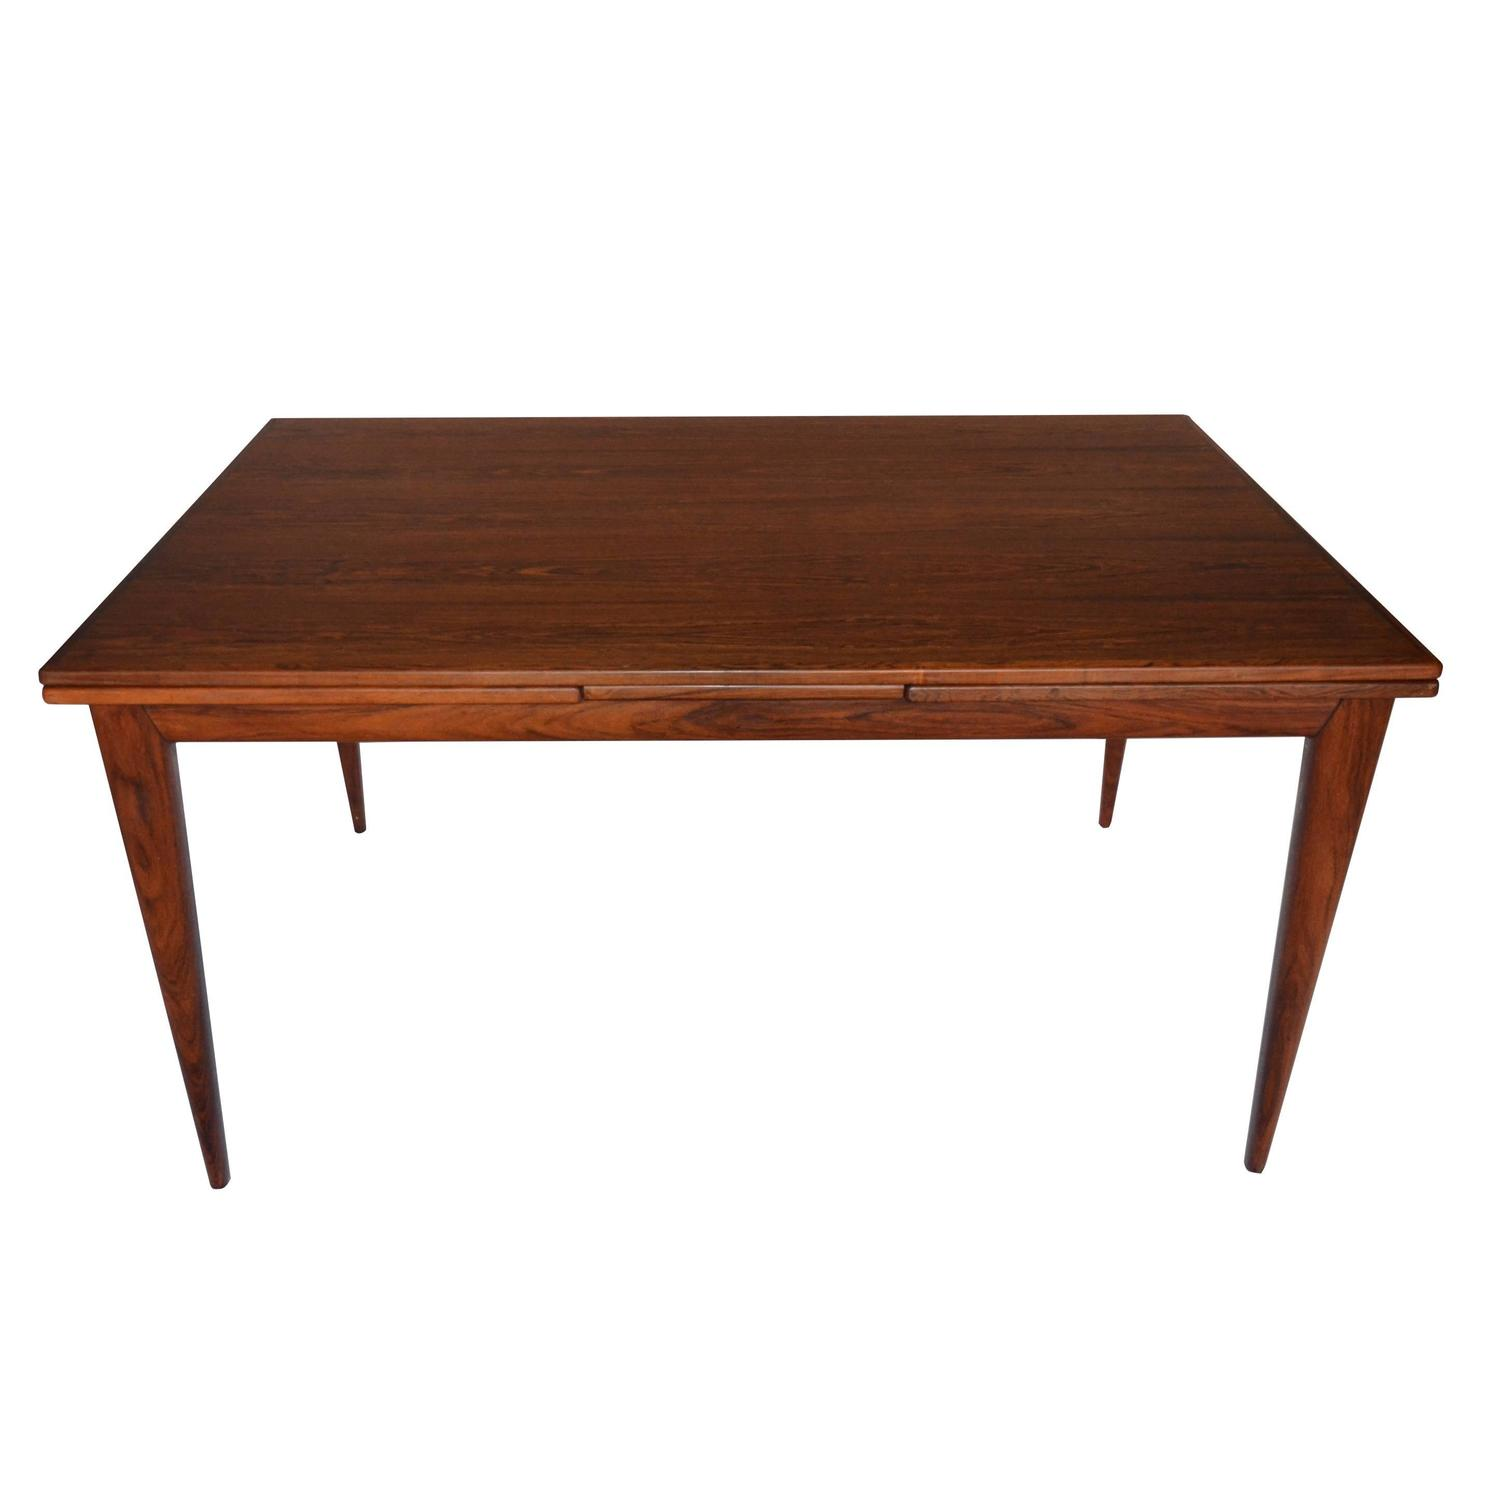 Rosewood Dining Table Niels Otto Moller Rosewood Dining Table Model No12 For Sale At